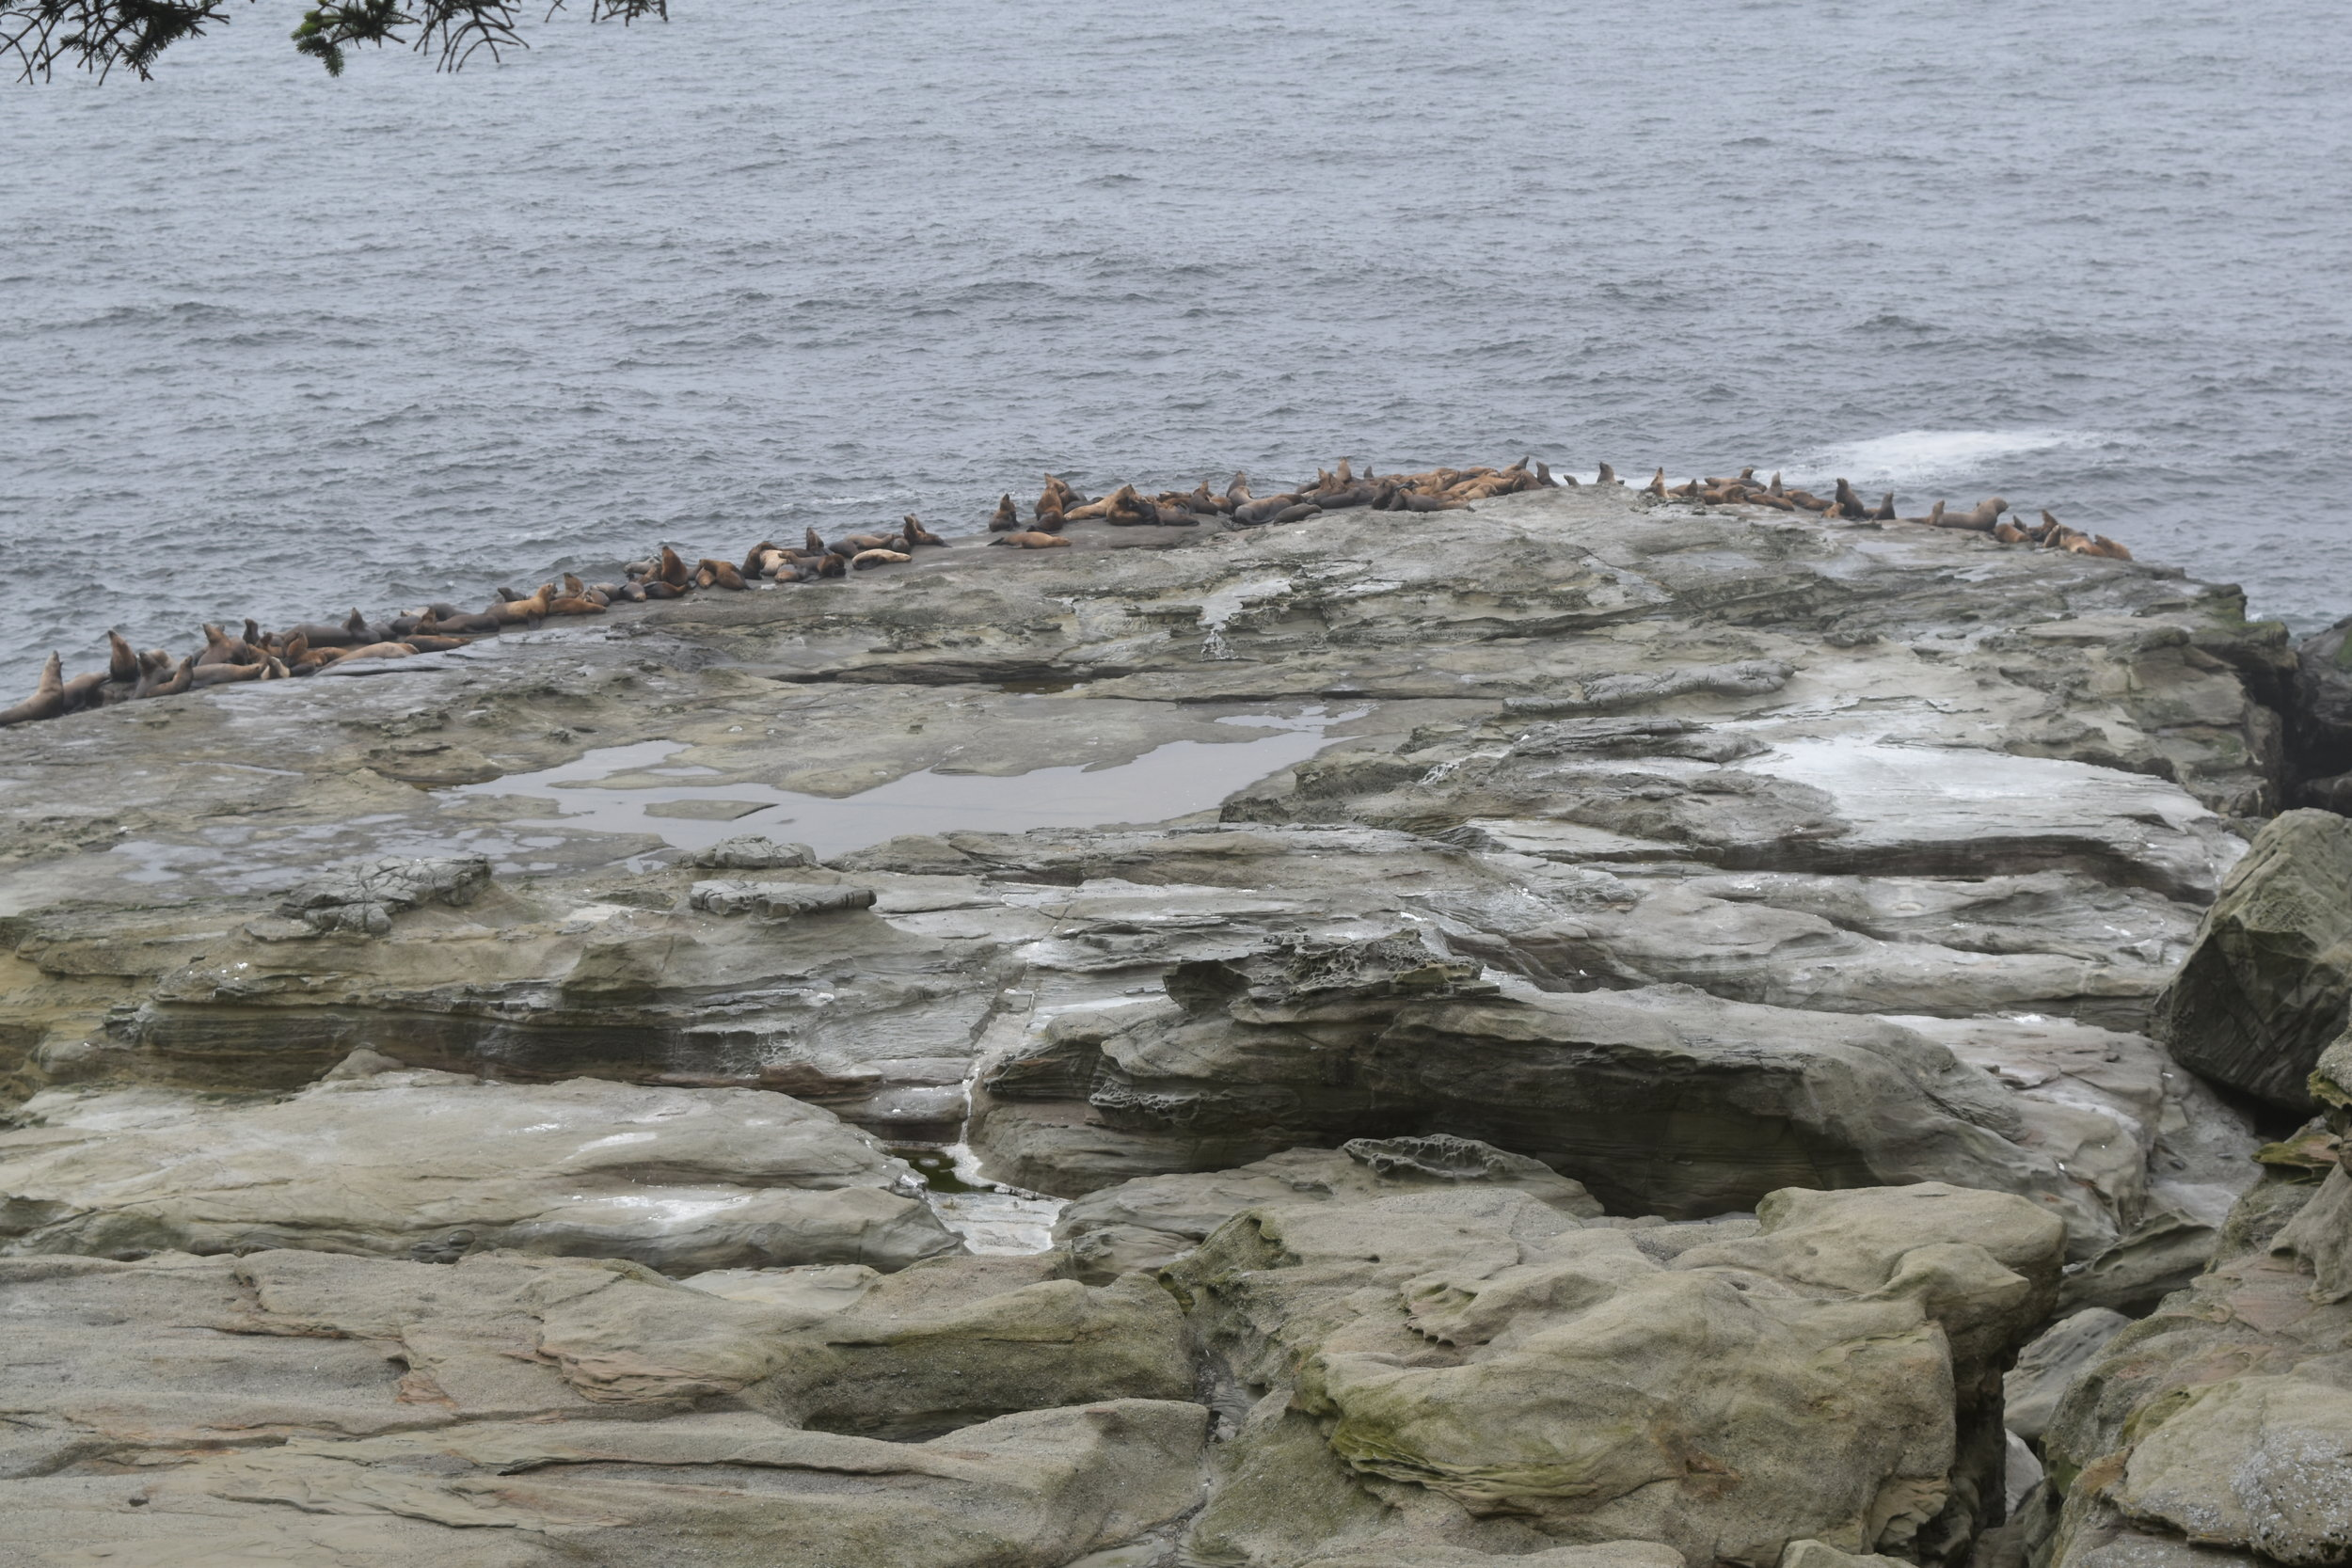 Look closely, they are sea lions!!!